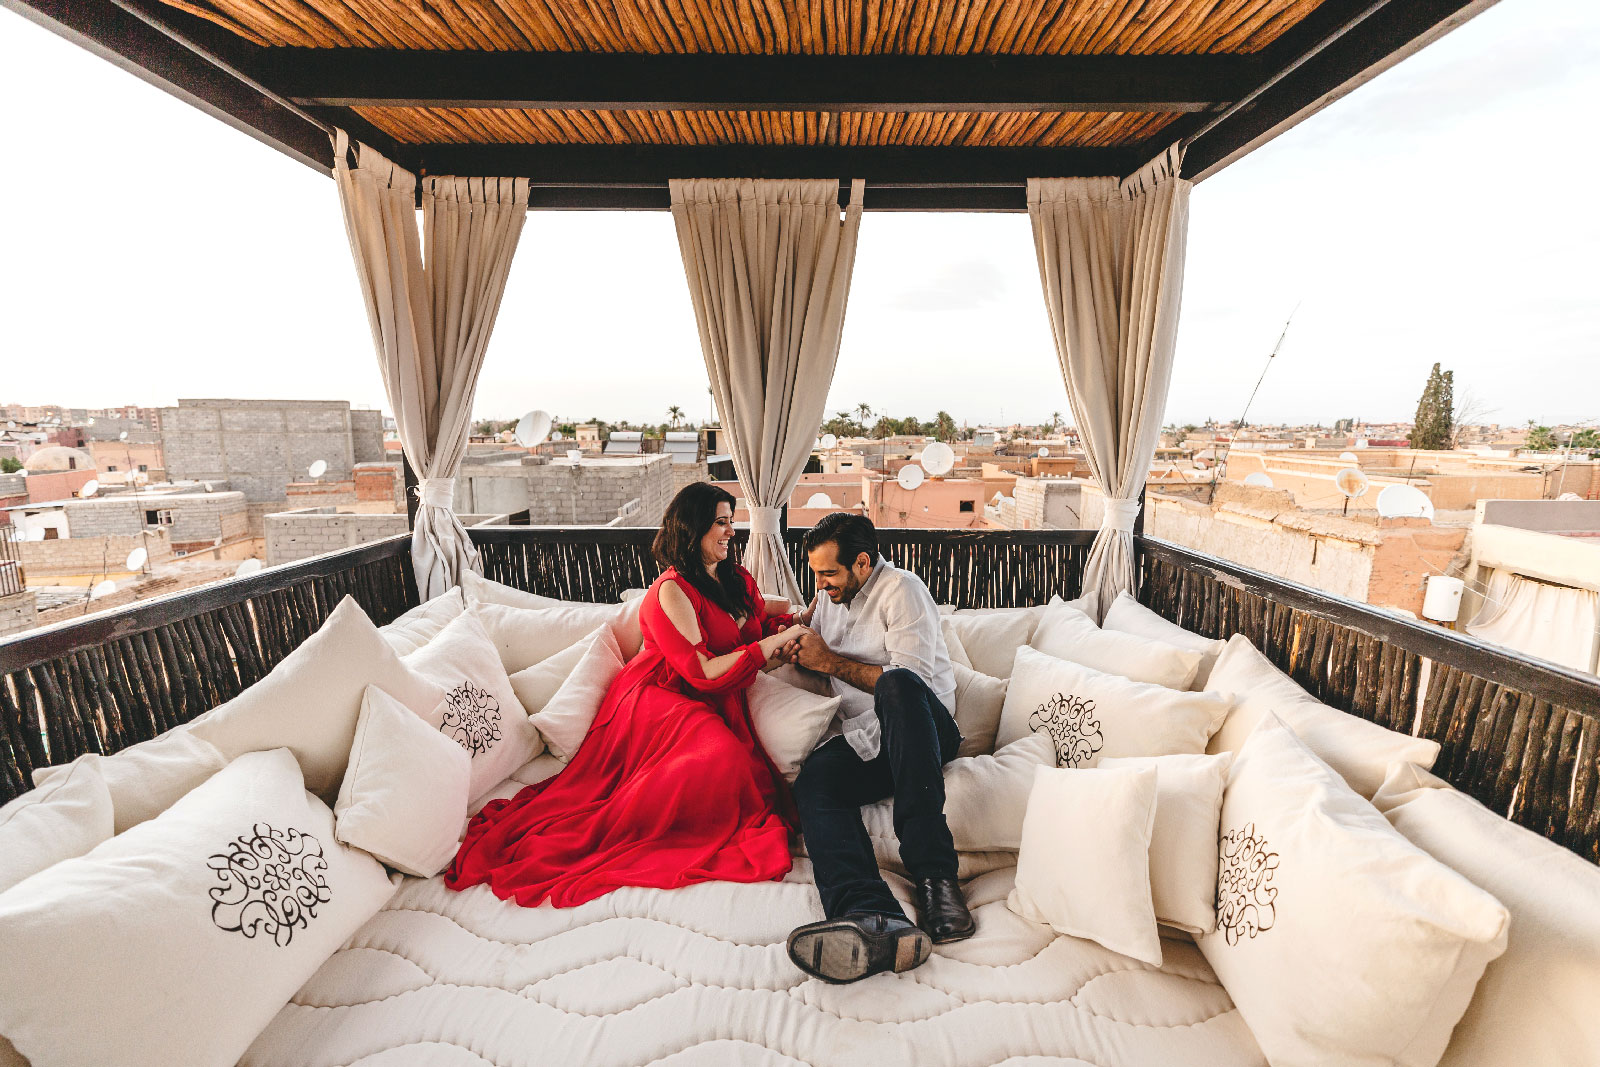 elopement in marrakech with traditional moroccan scenery and timeless atmosphere